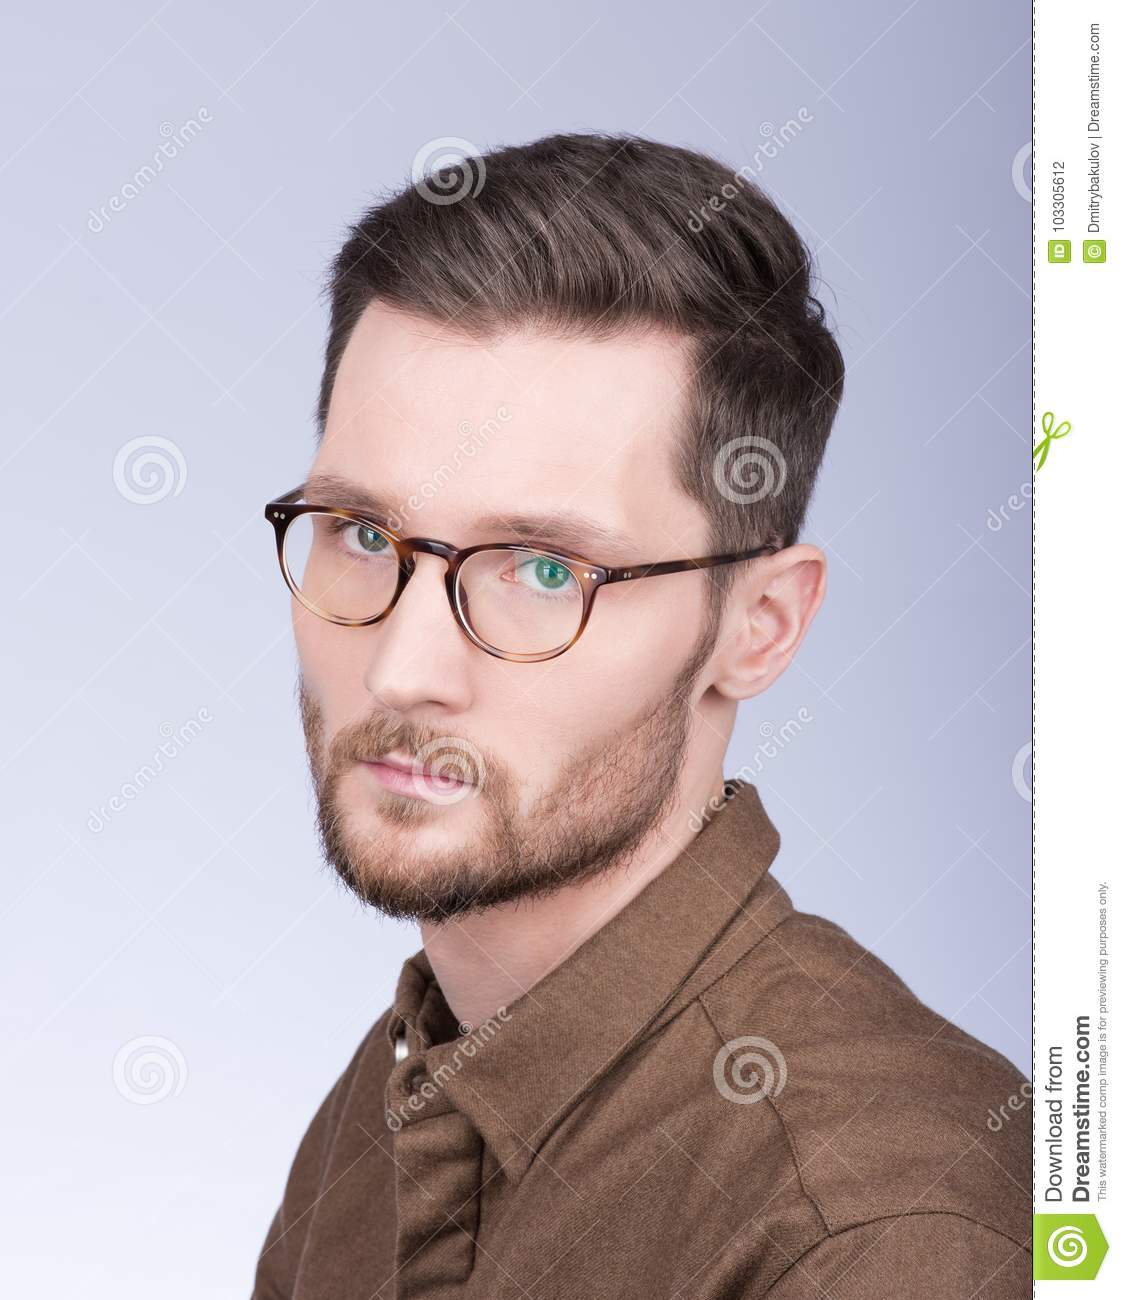 7ea5dc243a5e Fashion portrait of stylish young man in brown shirt. The beard and glasses.  A modern way. Neutral grey background